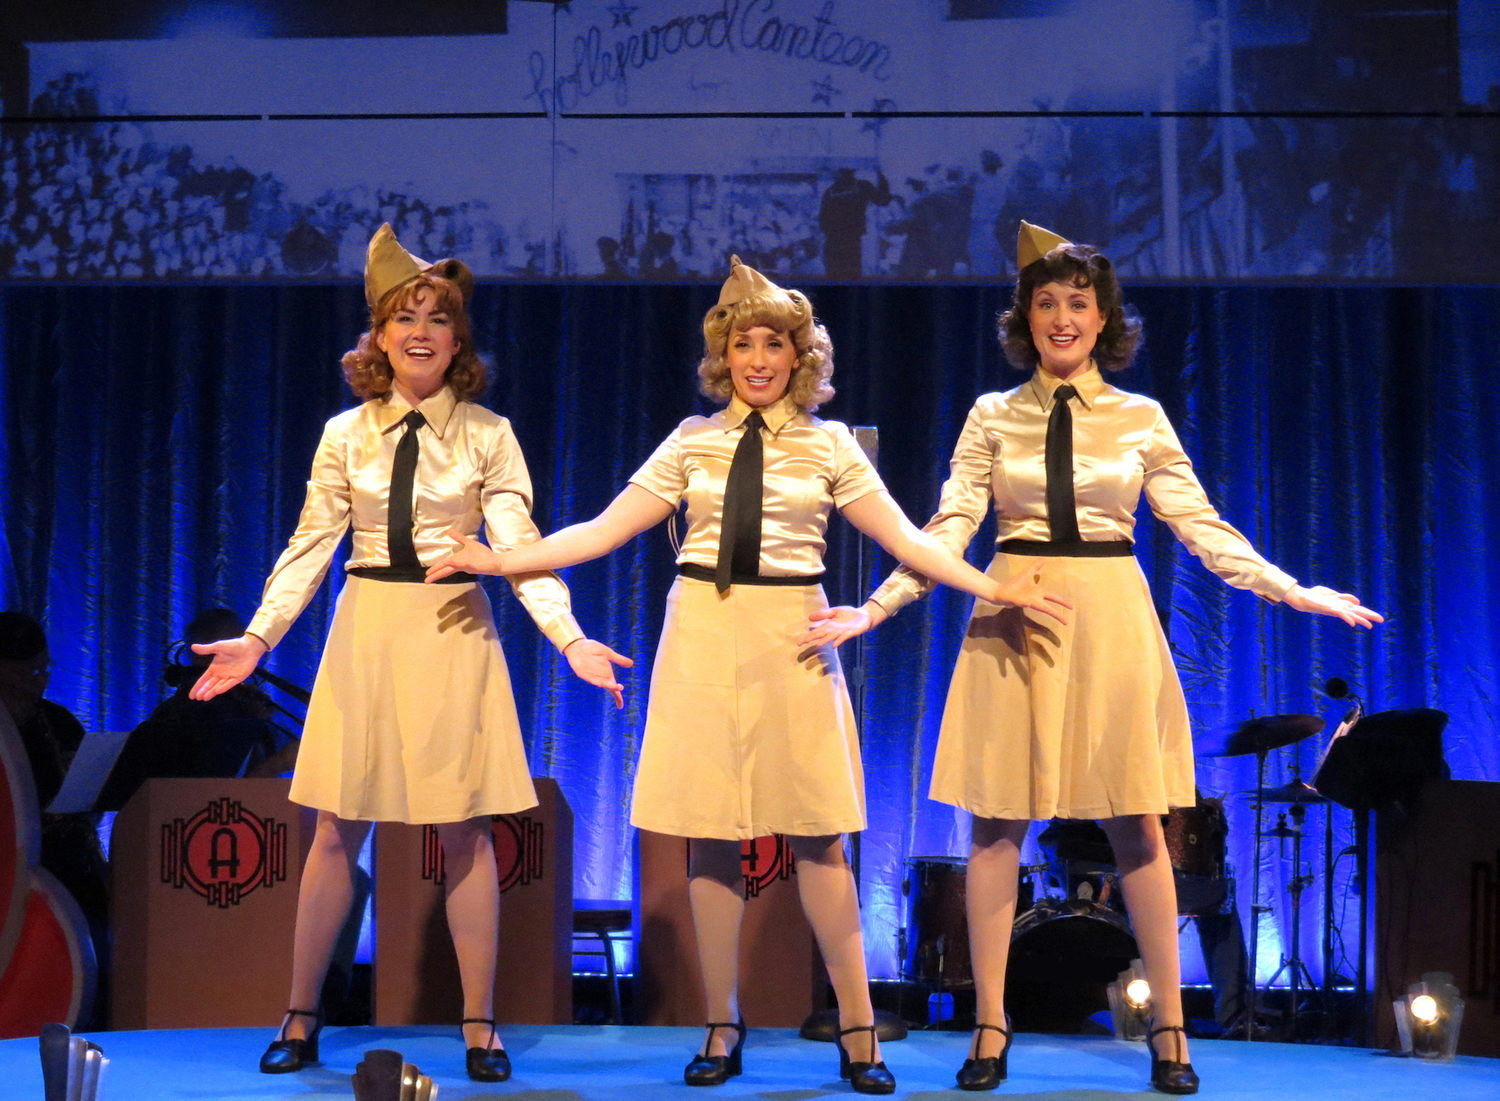 BWW Review: SISTERS OF SWING Delivers Solid Performance at Town Hall Arts Center